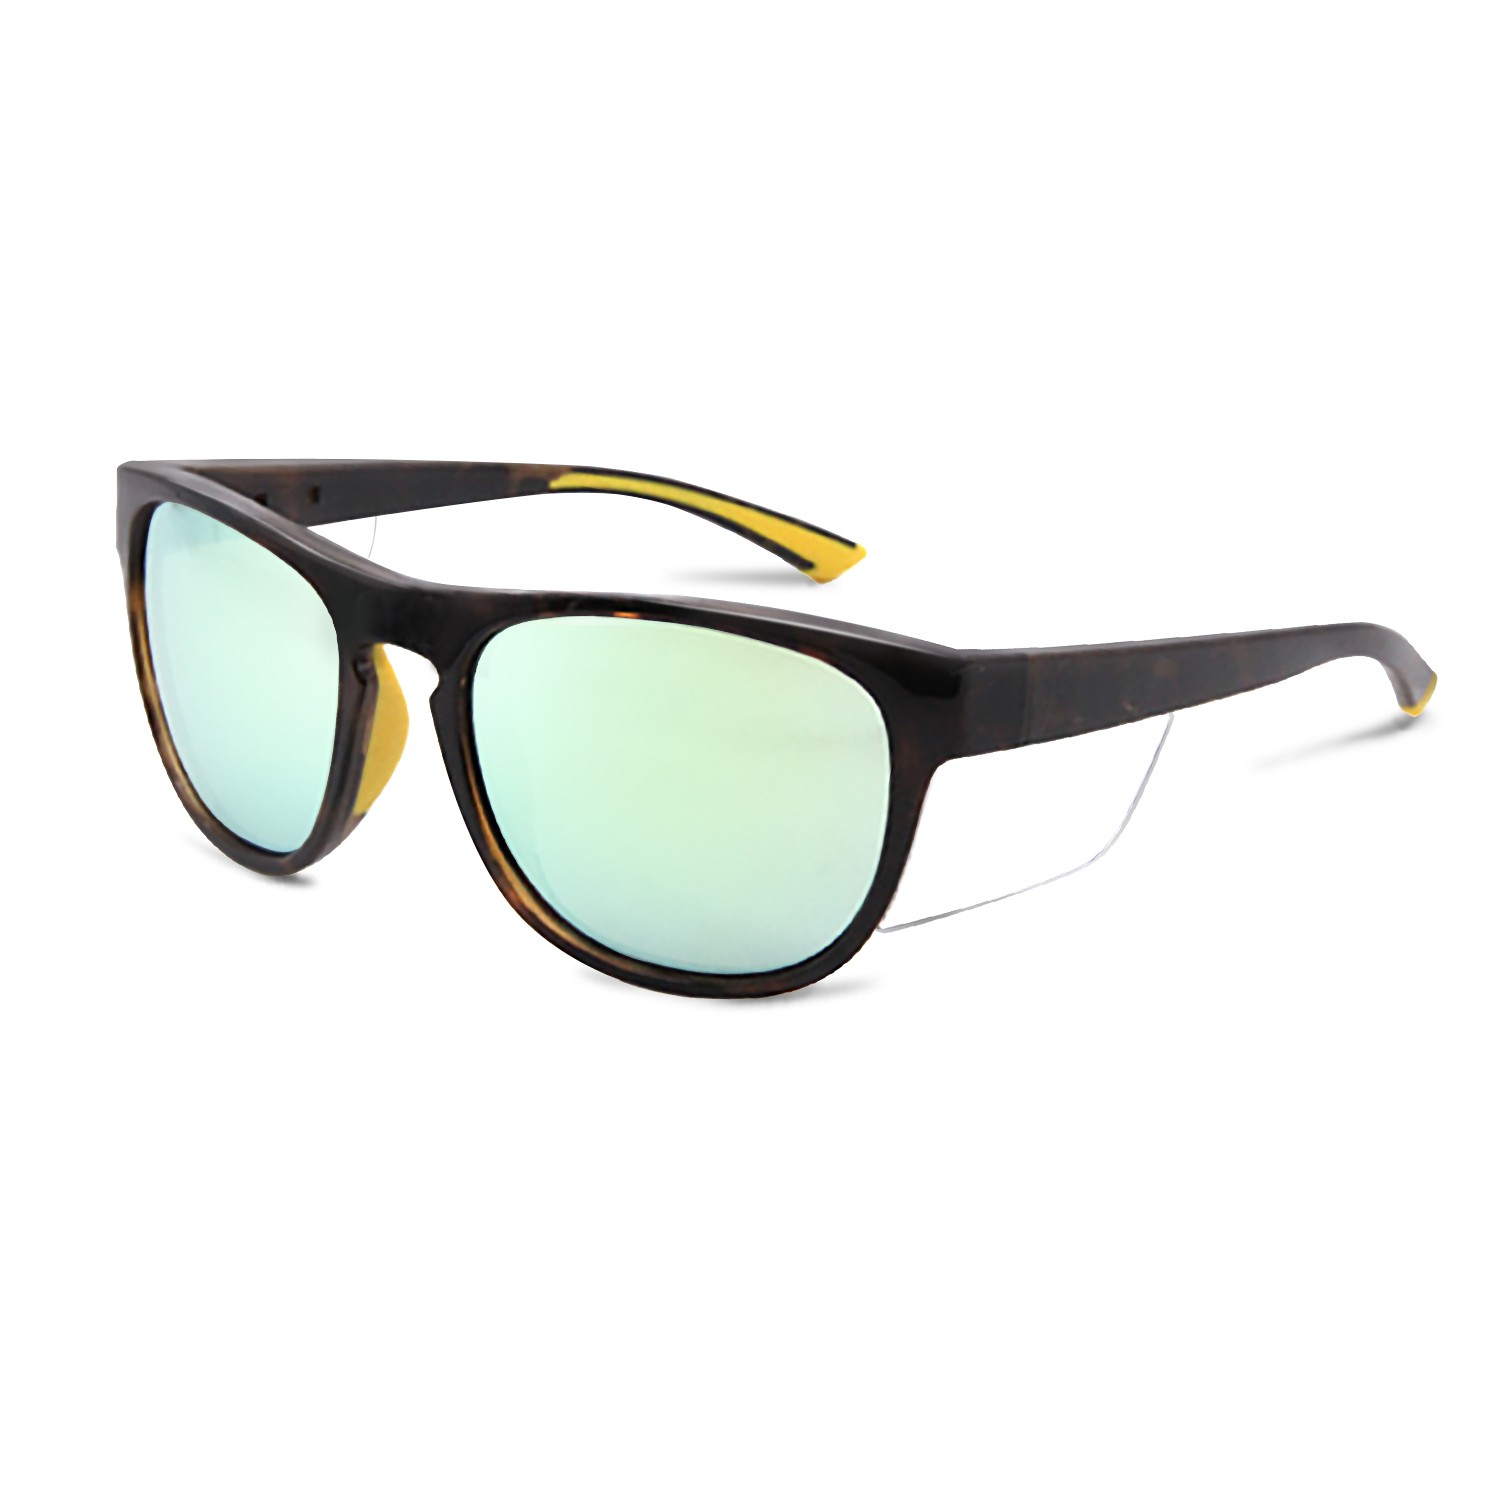 Safety Glasses with Detachable Shield Manufacturers, Safety Glasses with Detachable Shield Factory, Supply Safety Glasses with Detachable Shield